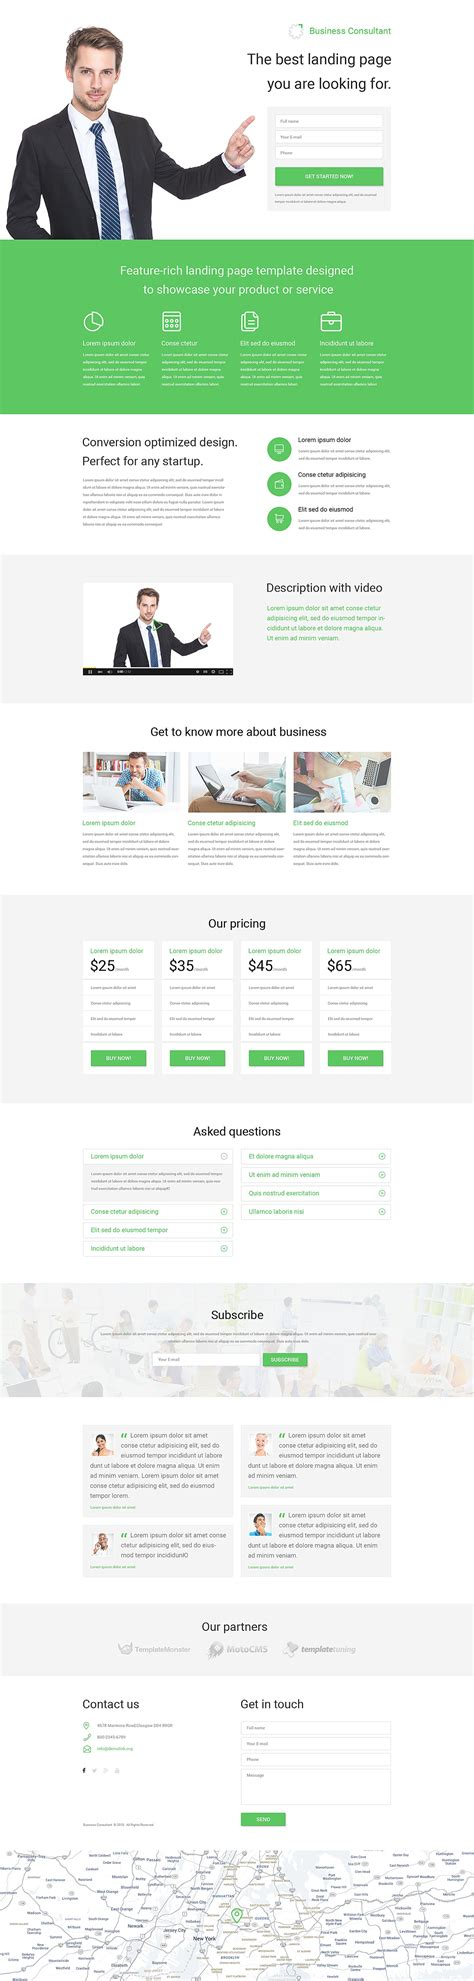 Business Responsive Landing Page Template 53788 Business Landing Page Template